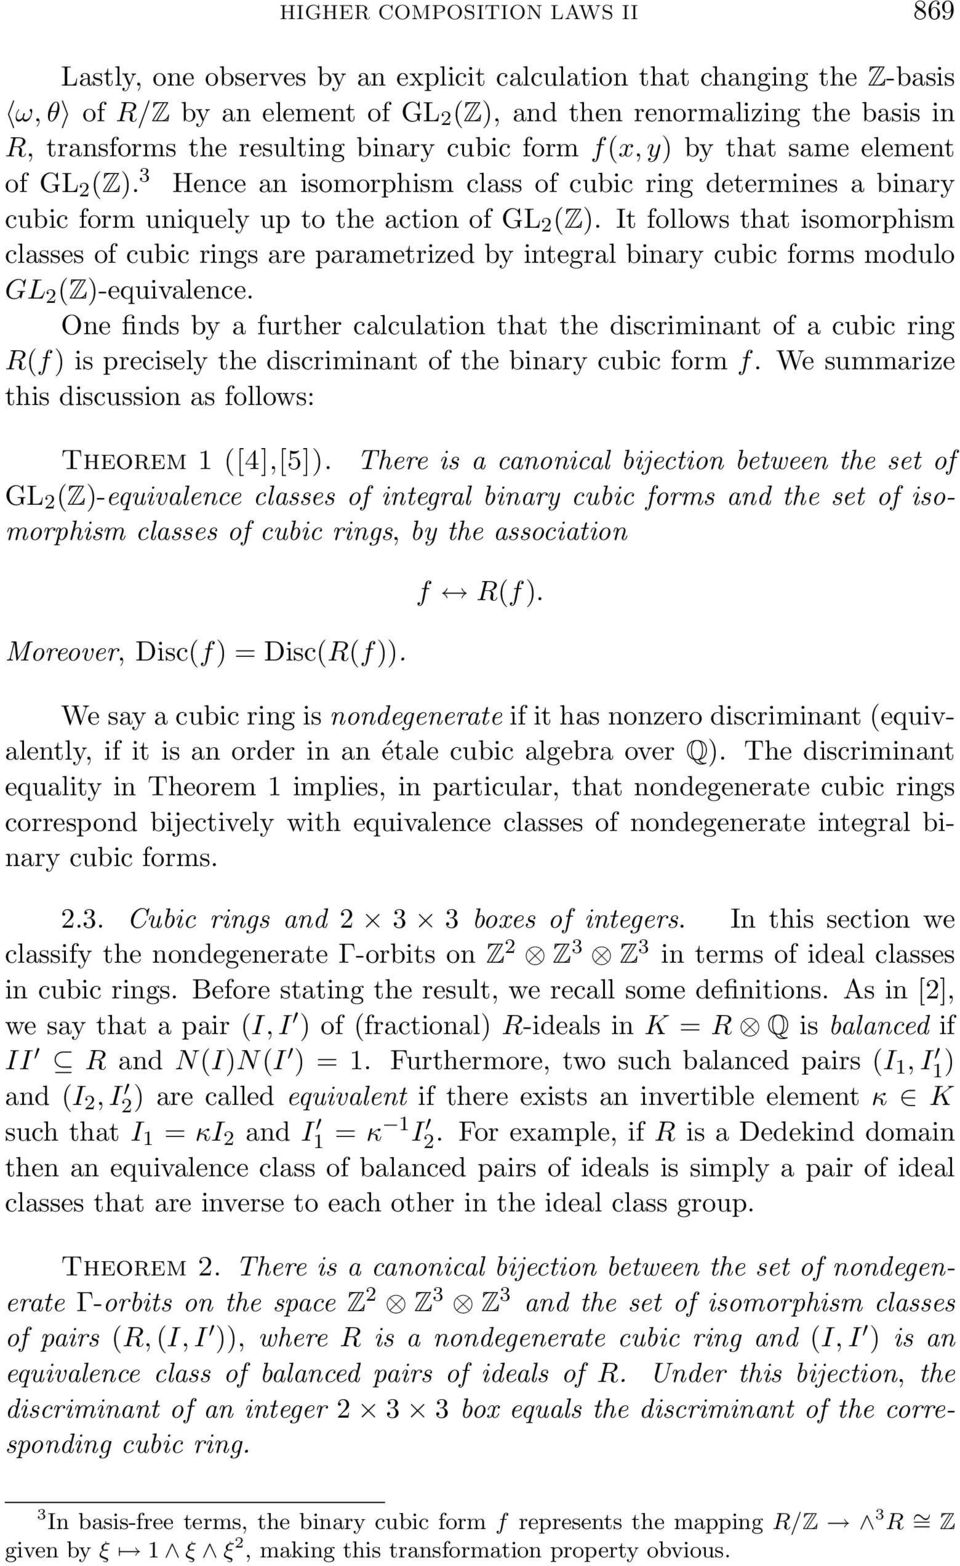 It follows that isomorphism classes of cubic rings are parametrized by integral binary cubic forms modulo GL 2 (Z)-equivalence.